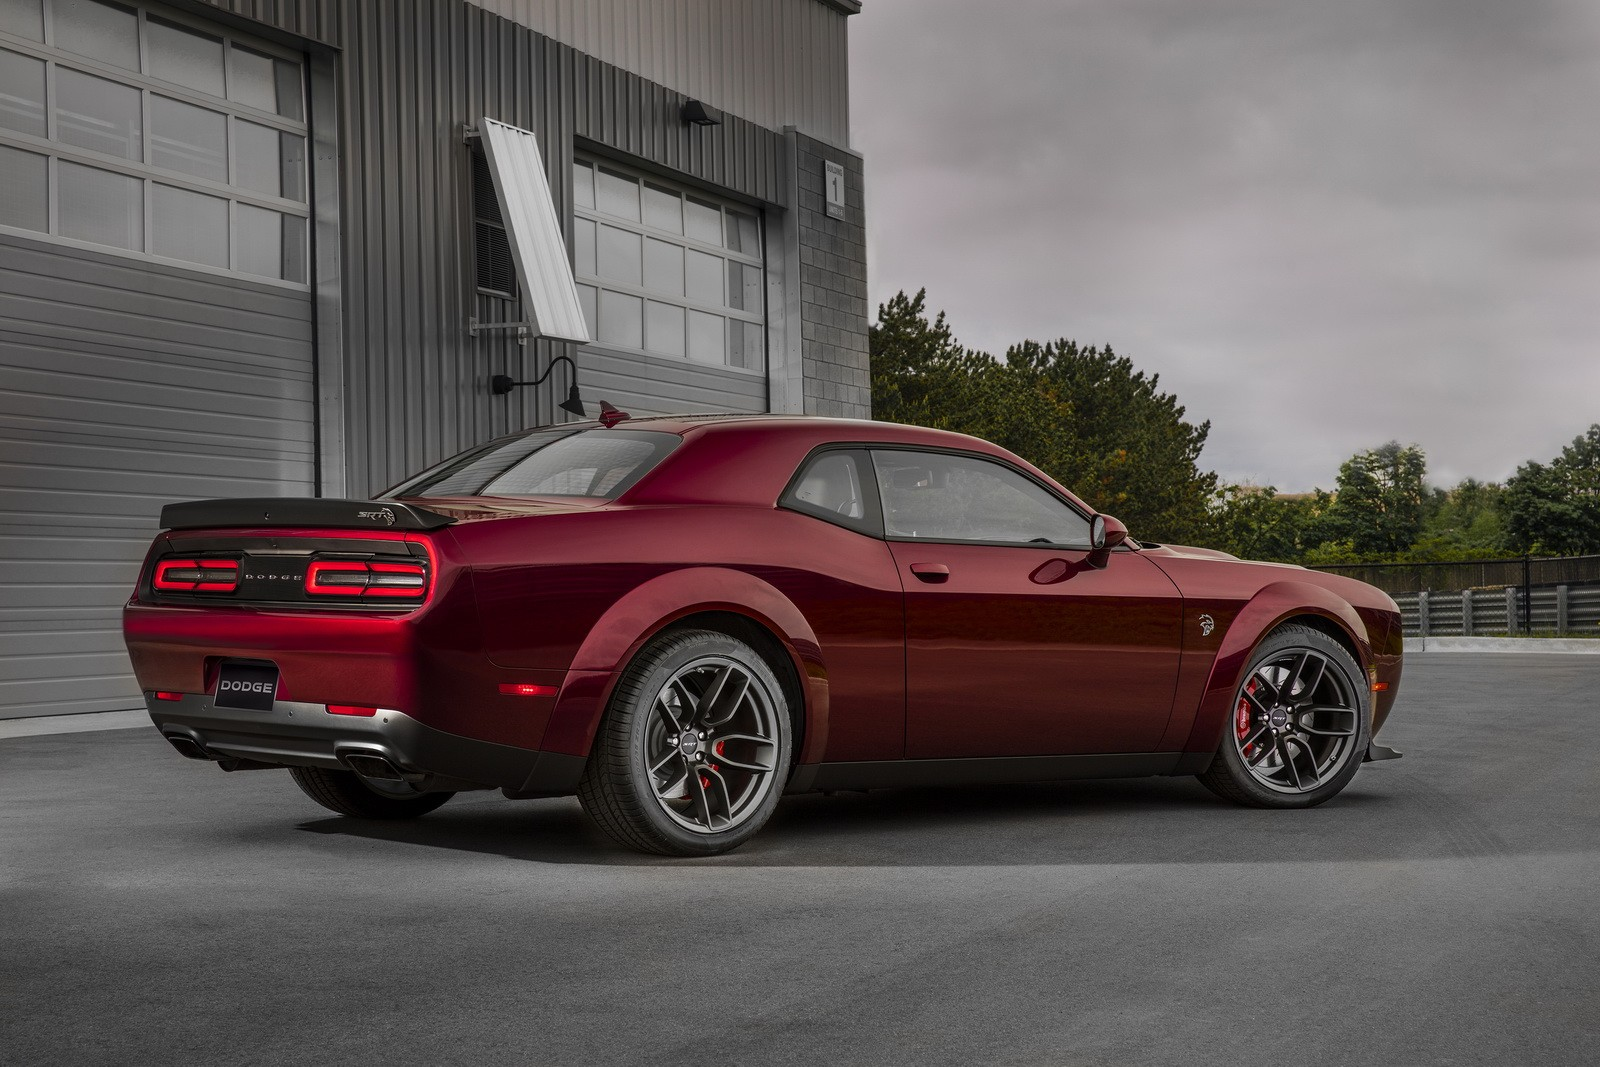 Dodge Reveals 2018 Challenger Srt Hellcat Widebody With HD Wallpapers Download free images and photos [musssic.tk]